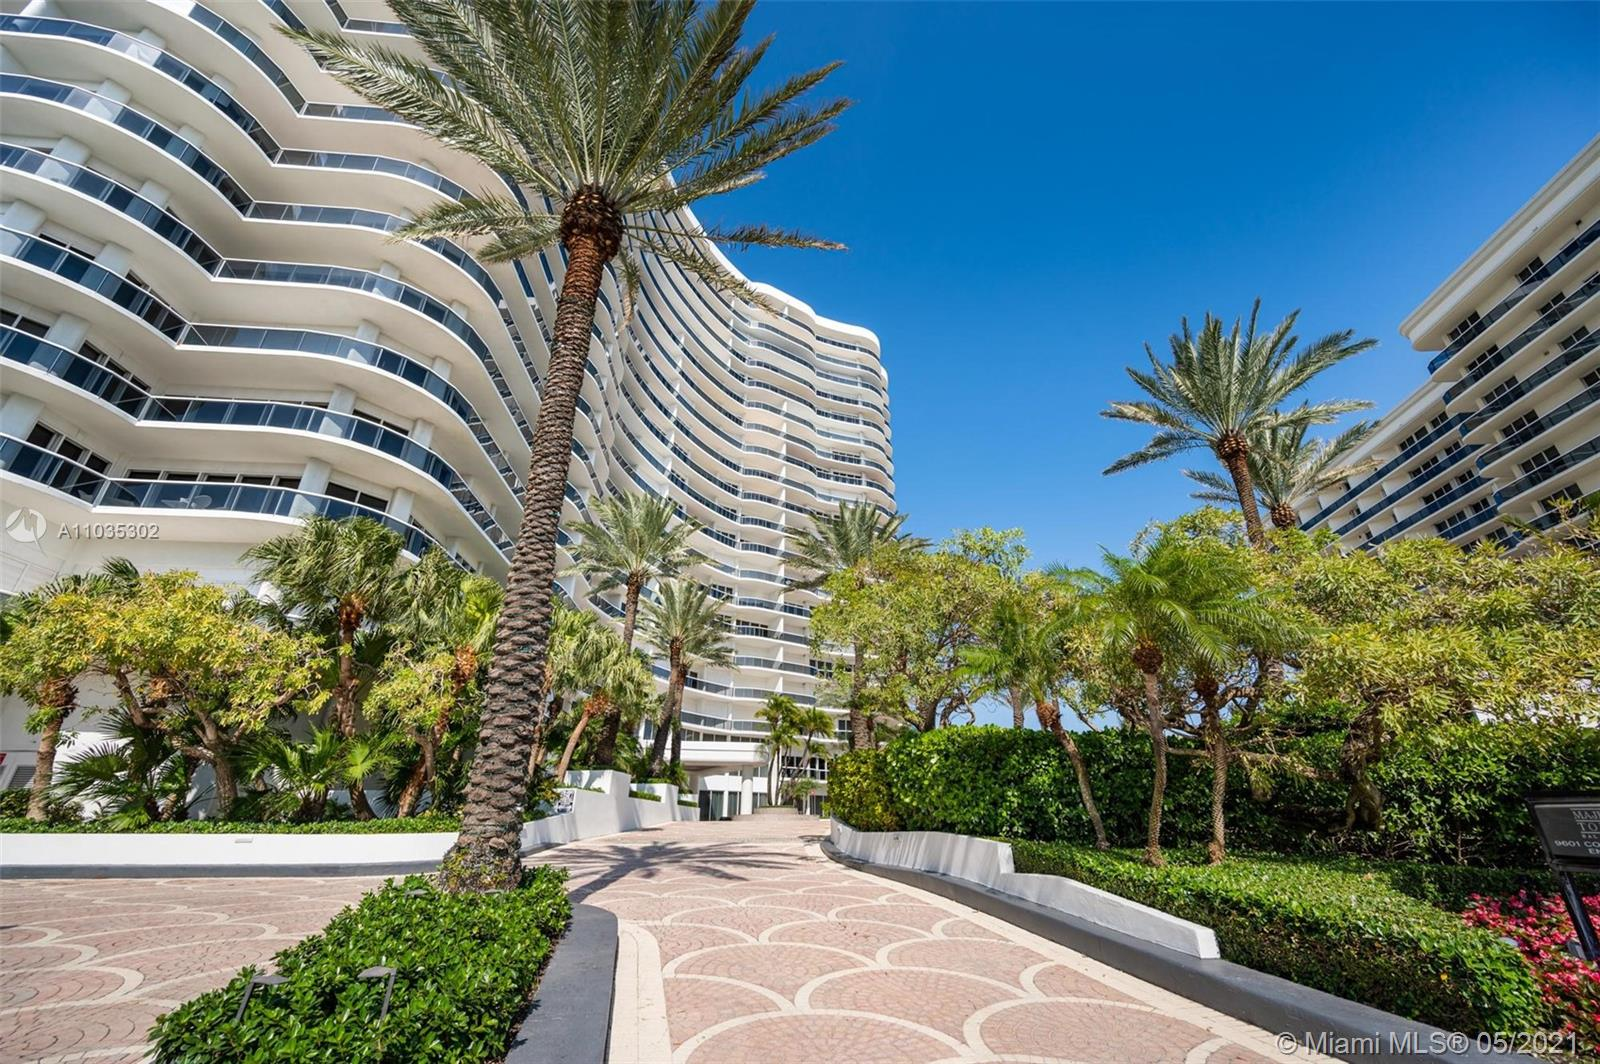 Spectacular Oceanfront Residence with Breathtaking Ocean and City Views..  2160 SQFT unit, 02 Bed 02 Bath, Spacious Layout with a Private Elevator,  Marble floor, Large Kitchen, walk-in closets, Over Sized Balcony. Enjoy To All The Finest Amenities Including Pool, Beach Service,  Tennis court, Gym , Valet, Concierge and more. Majestic Tower Luxury Lifestyle located at Bal Harbour.